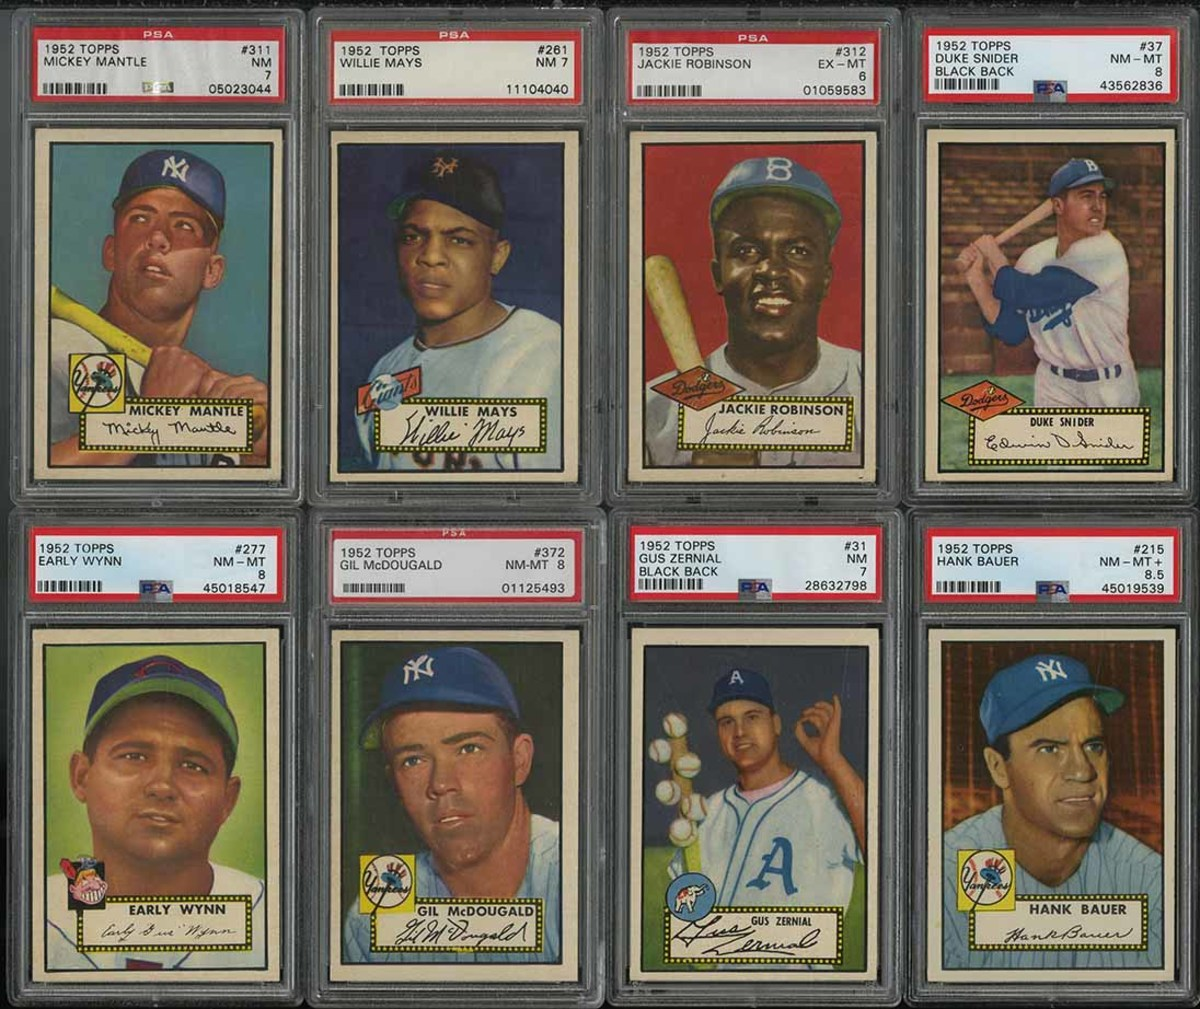 A 1952 Topps Baseball complete set featuring Mickey Mantle, Willie Mays and Jackie Robinson.